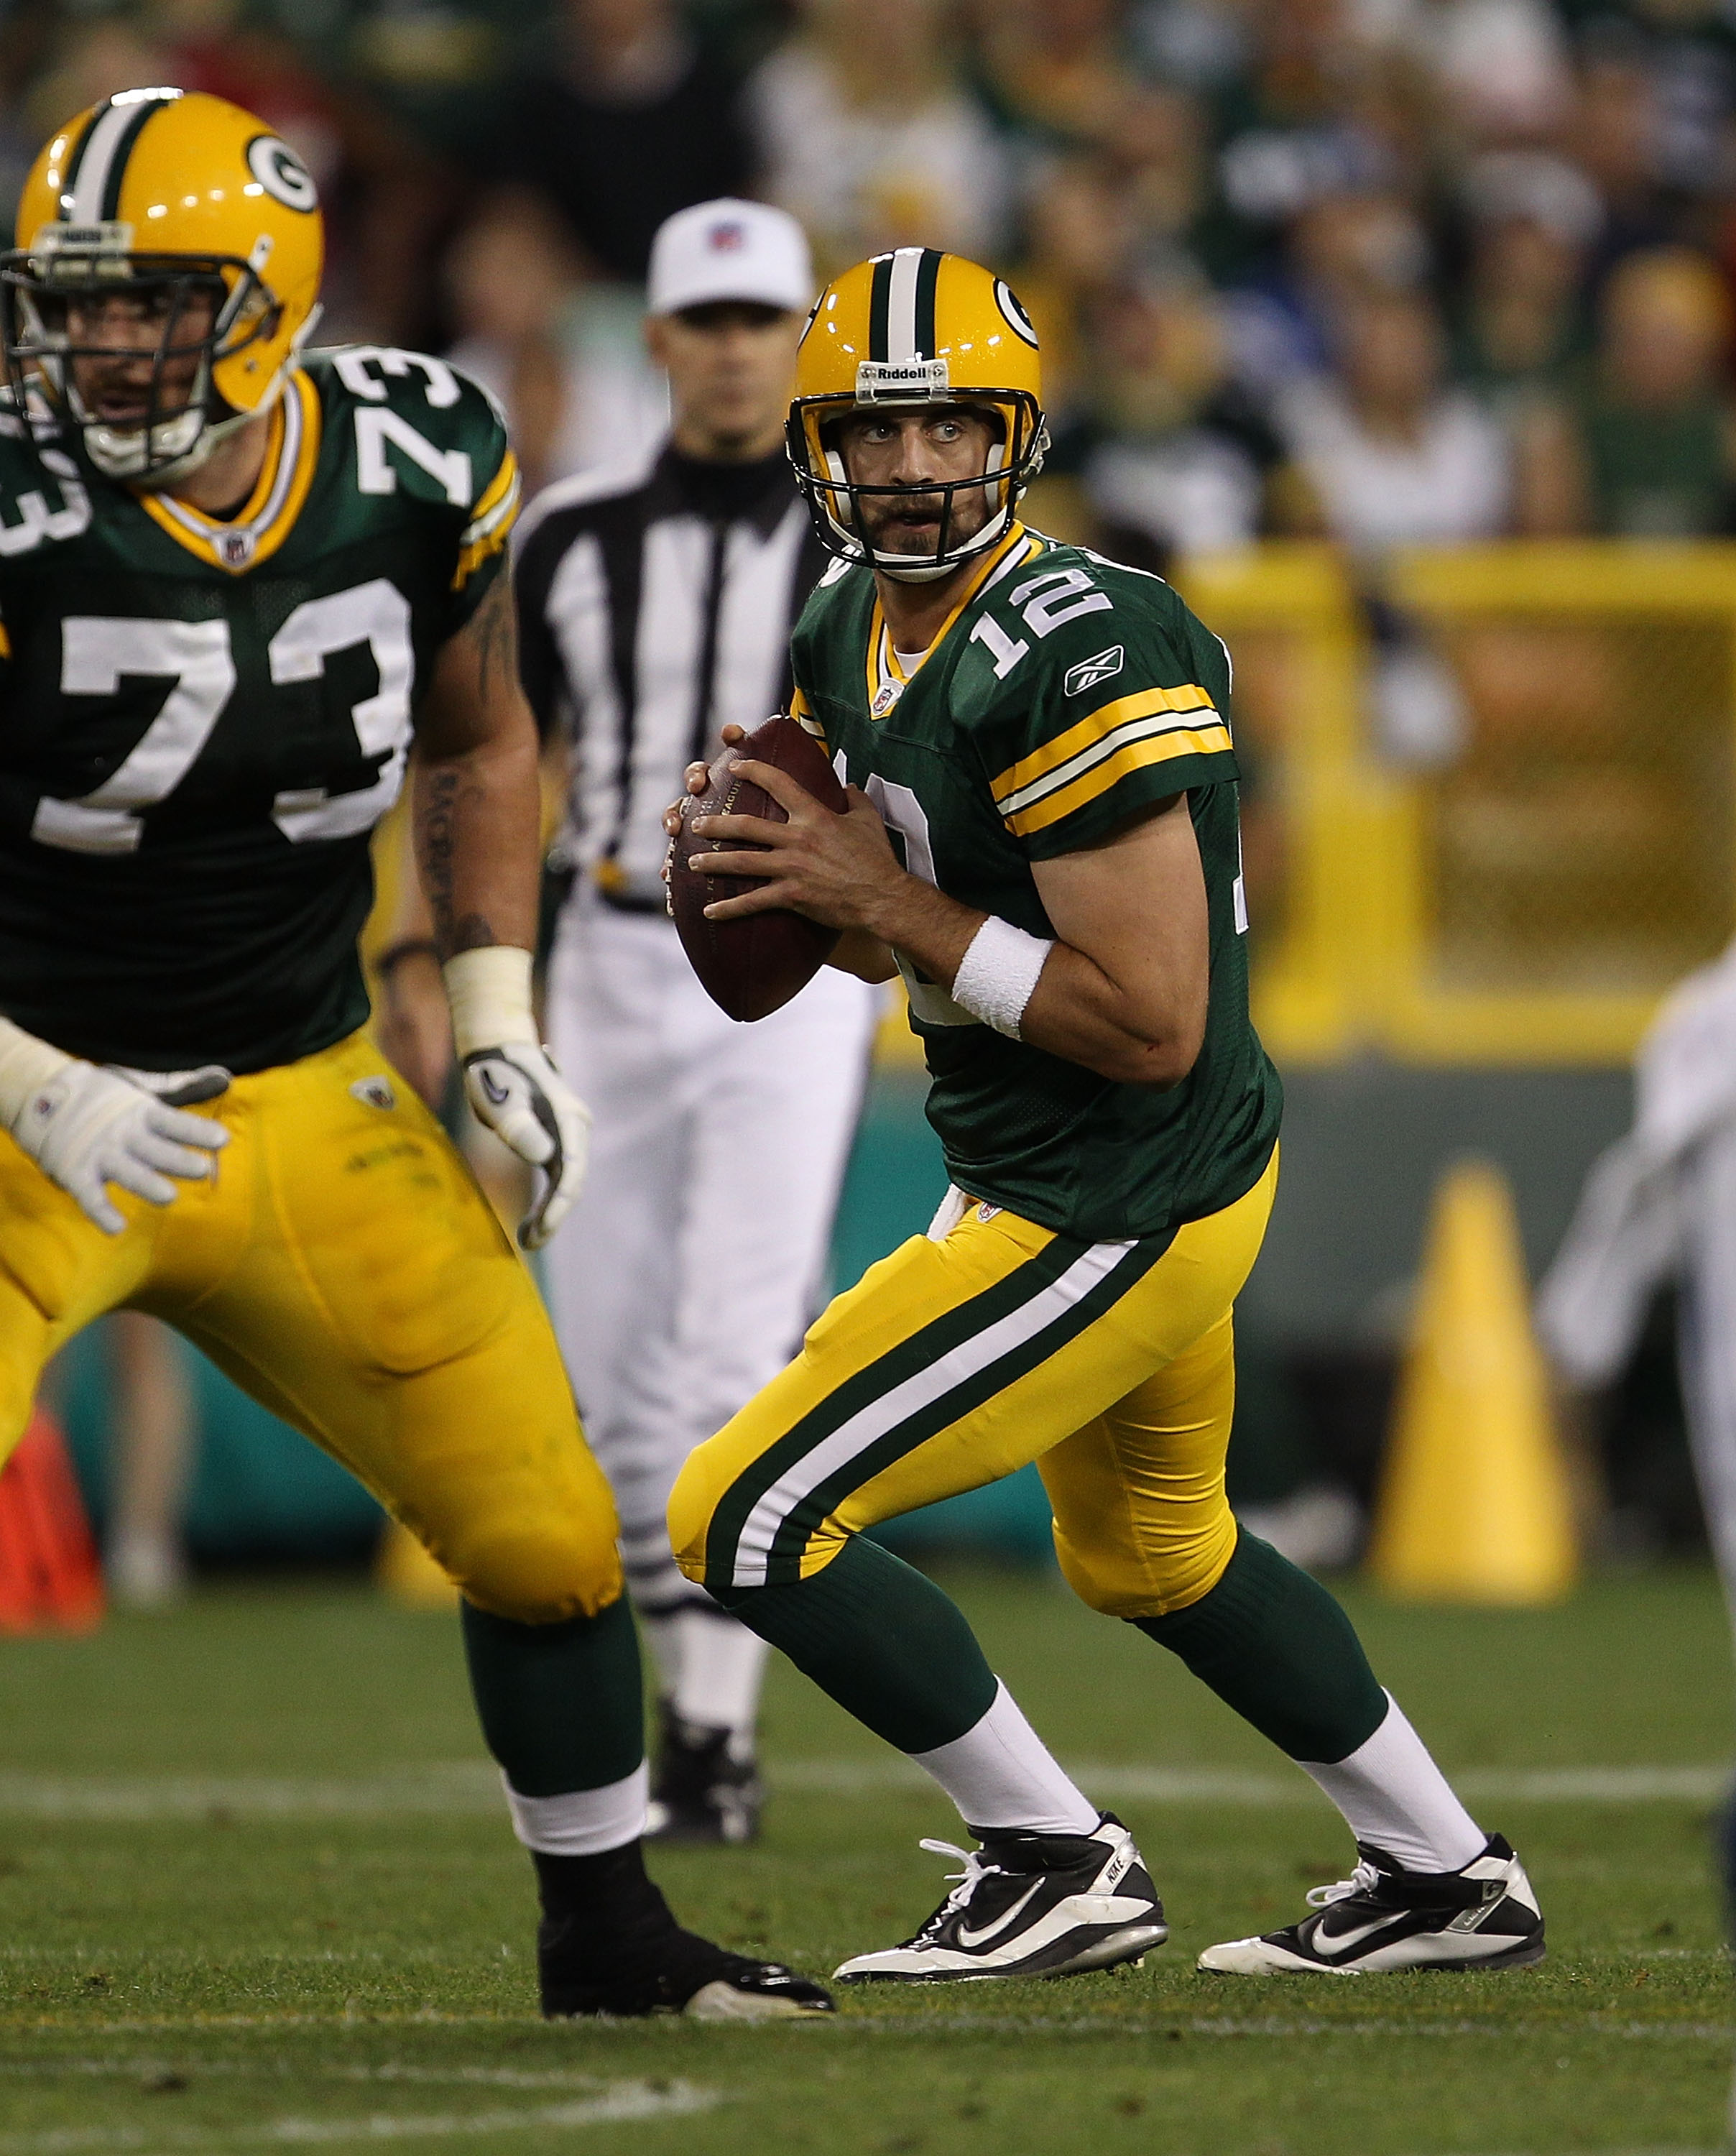 GREEN BAY, WI - AUGUST 26: Aaron Rodgers #12 of the Green Bay Packers drops back to look for a receiver as teammate Daryn Colledge #73 looks to block against the Indianapolis Colts during a preseason game at Lambeau Field on August 26, 2010 in Green Bay,